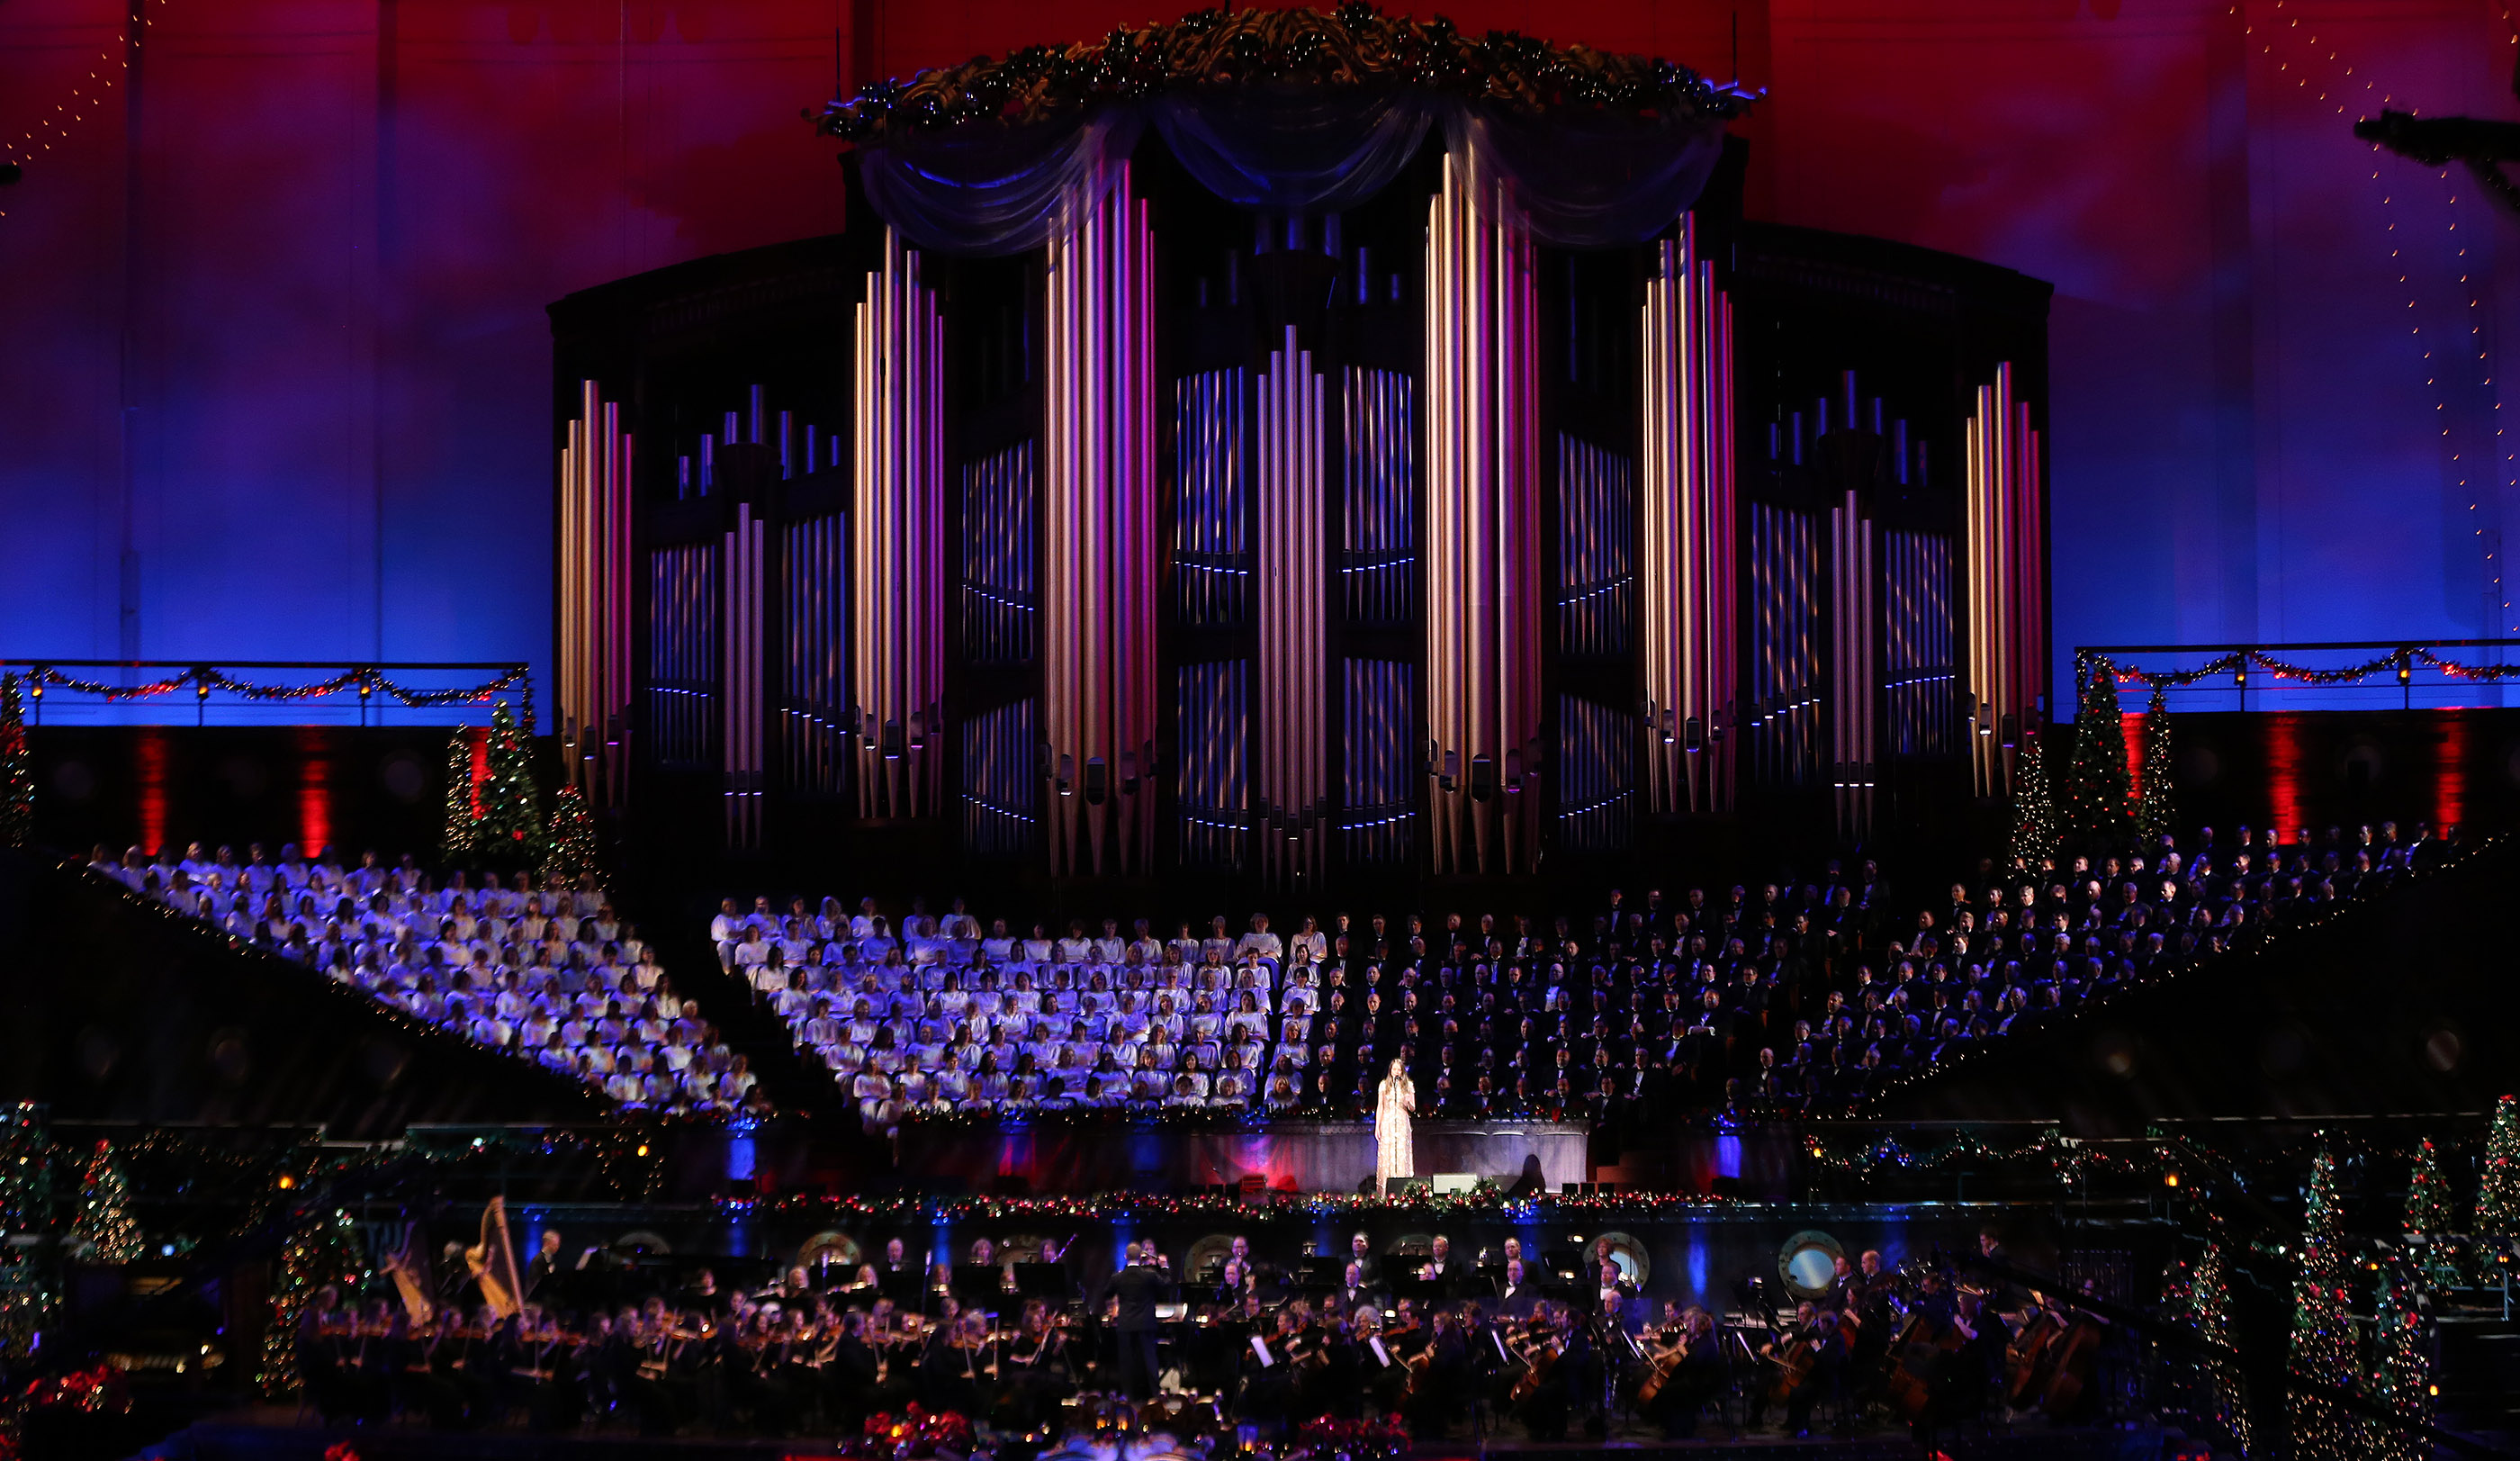 Broadway Star Sutton Foster Sings During The Mormon Tabernacle Choir Christmas Concert In Salt Lake City On Thursday December 14 2017